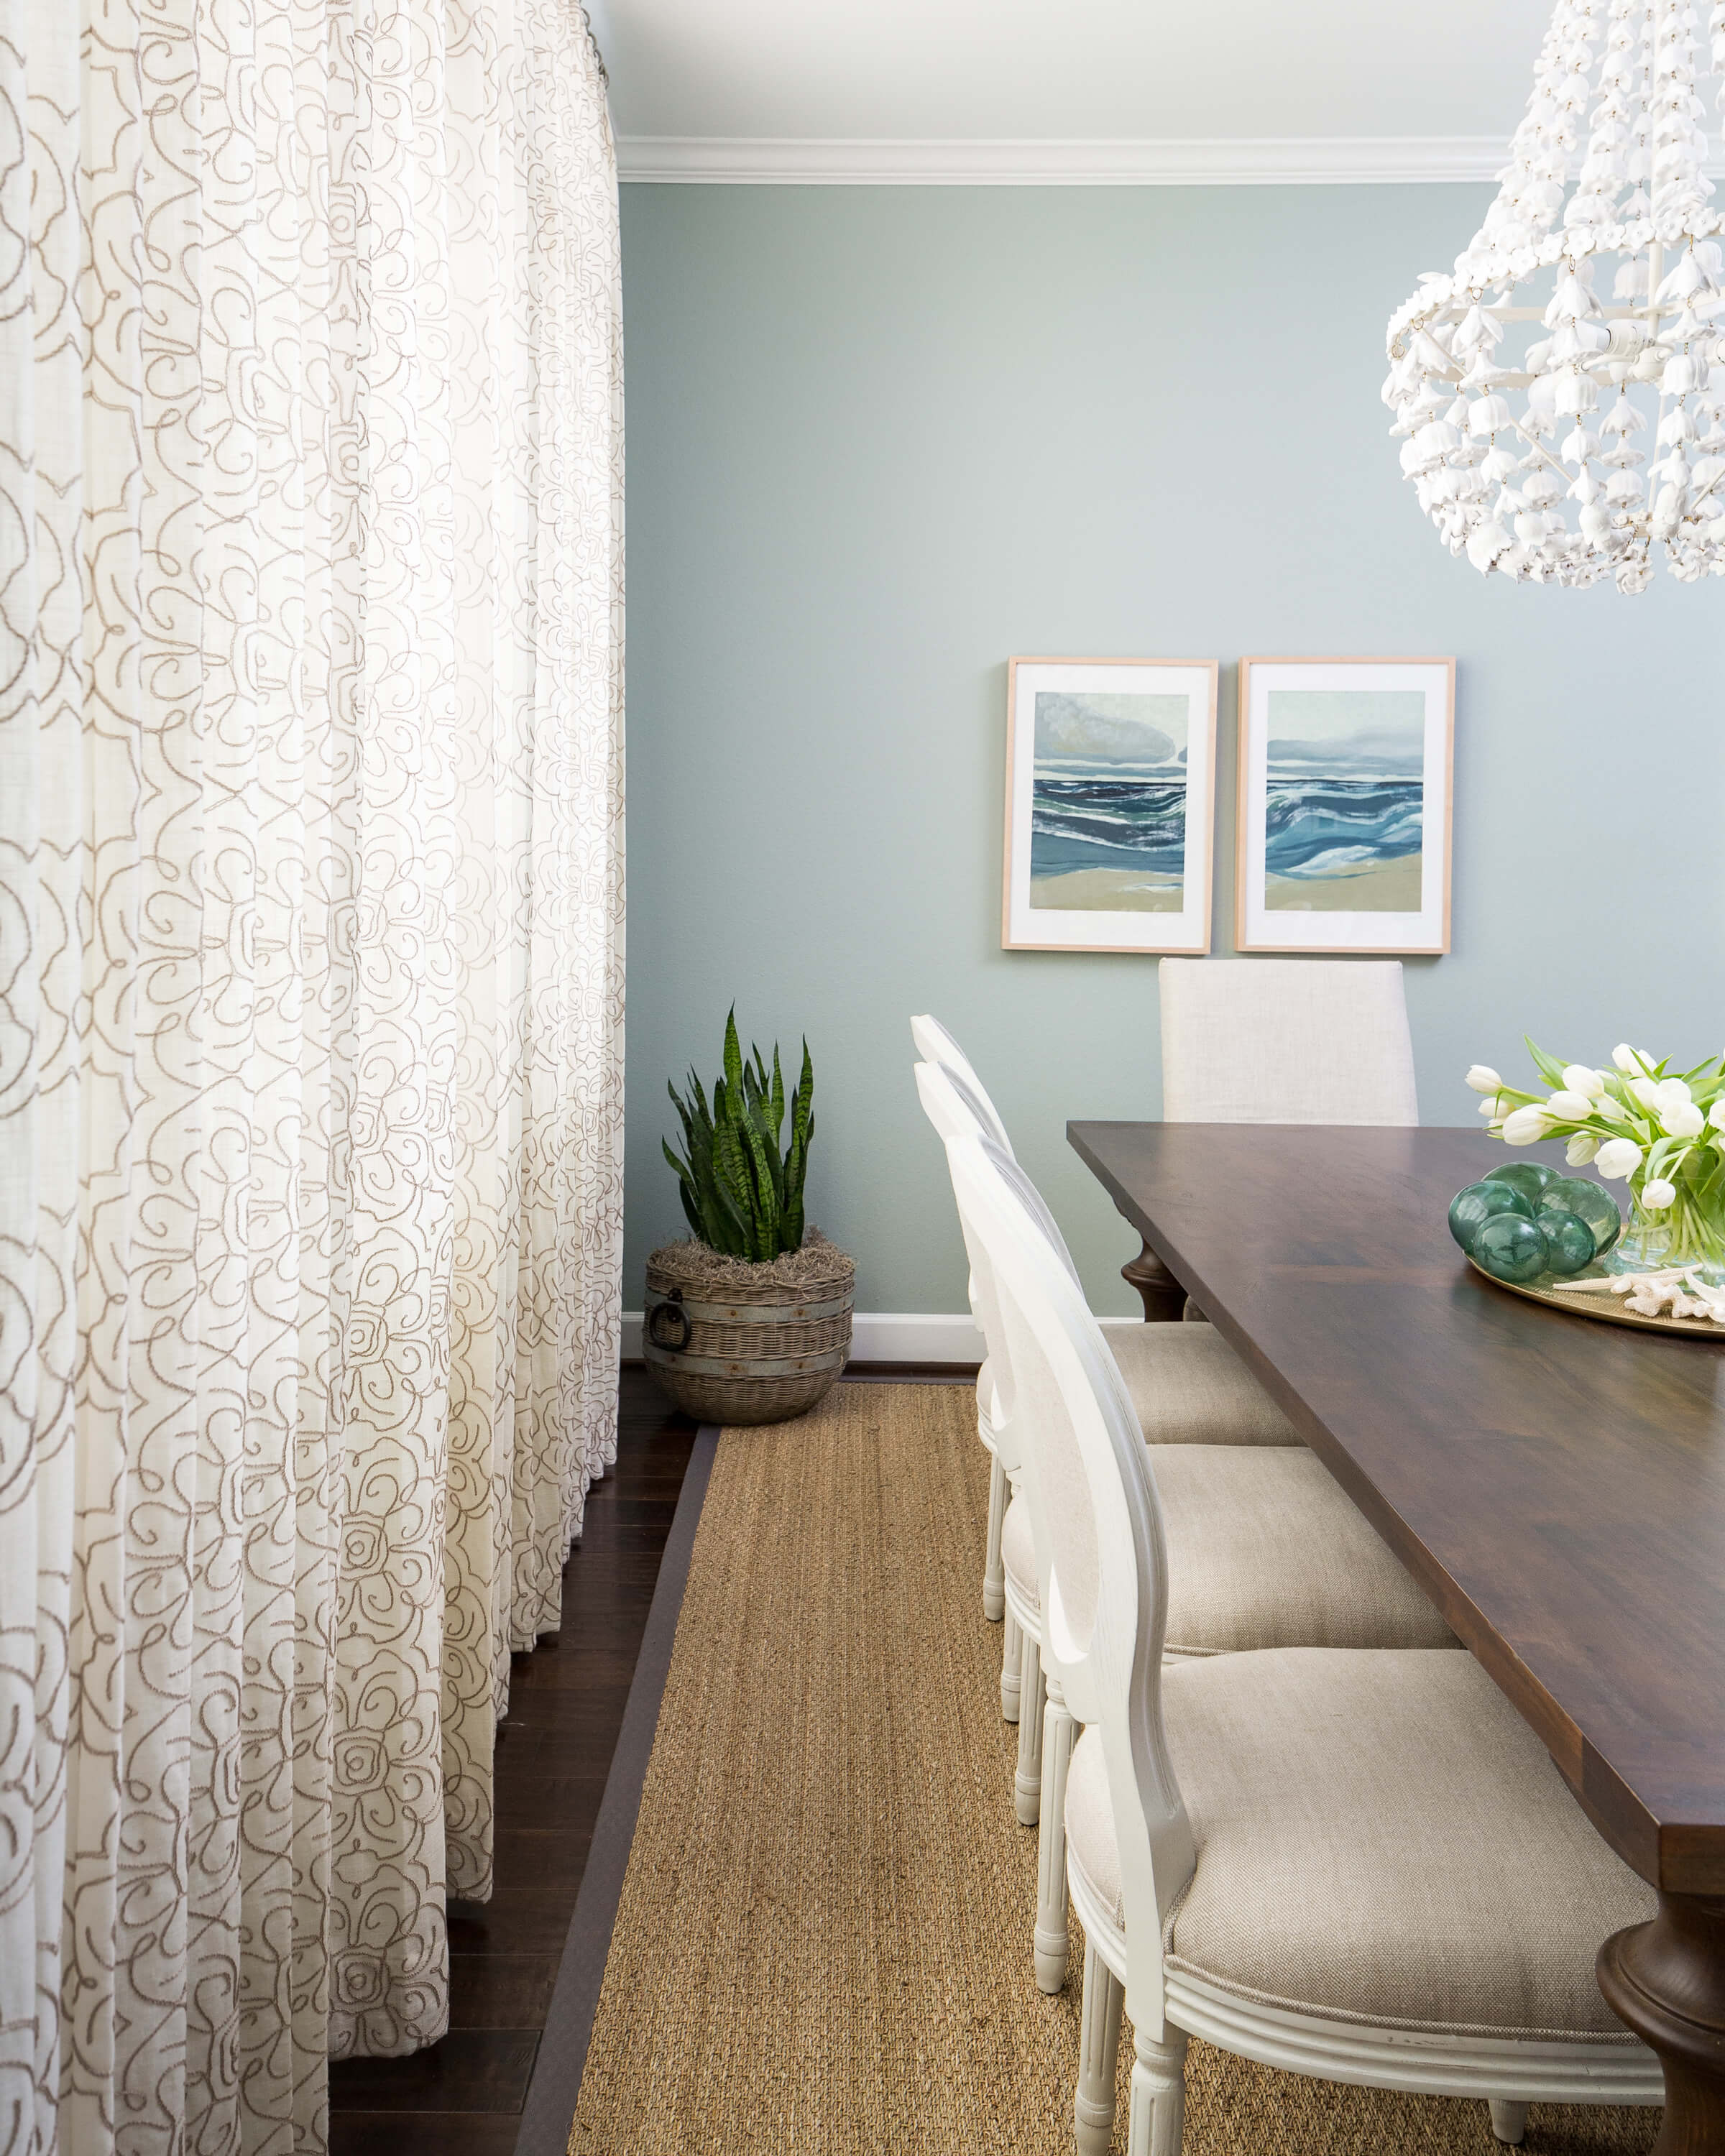 Think Again Before You Diy Your Window Treatments Here S Why Designed